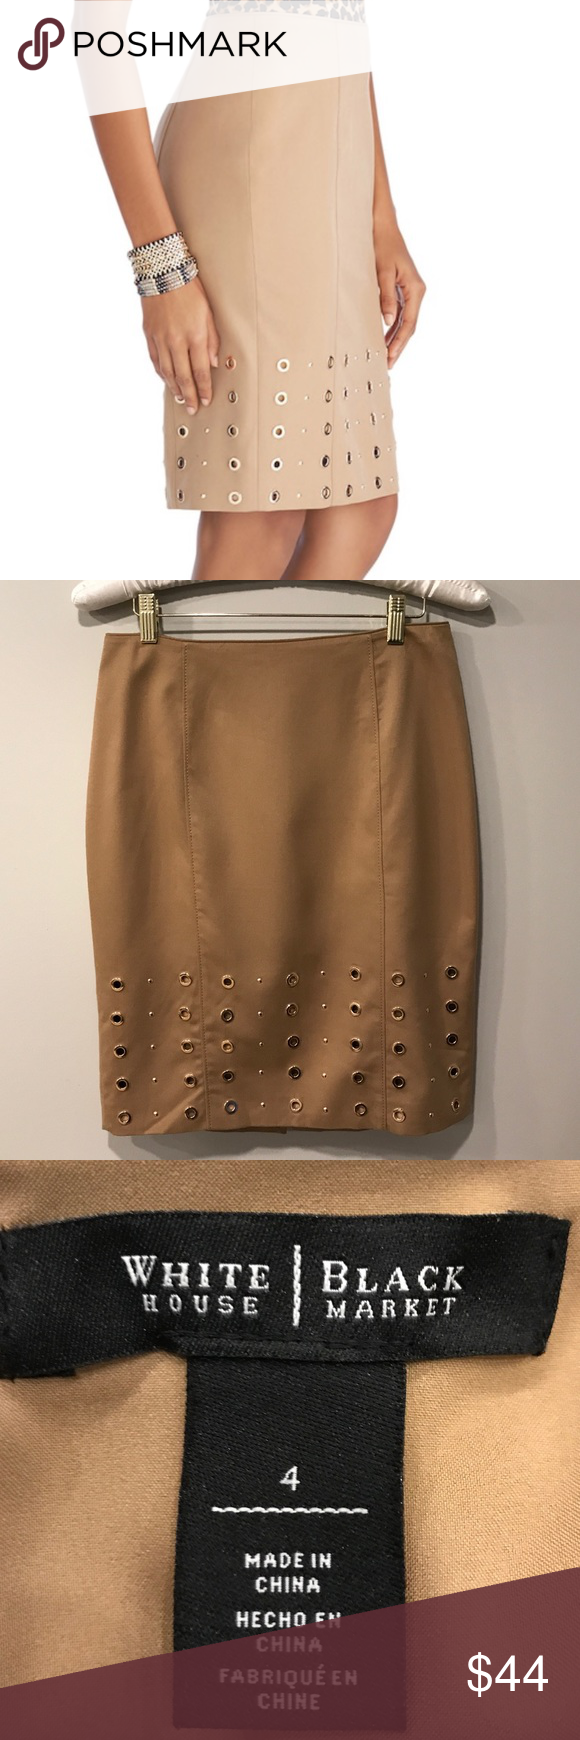 29562a5fd White House Black Market Grommet Pencil Skirt. 4 White House Black Market  Tan Grommet Pencil